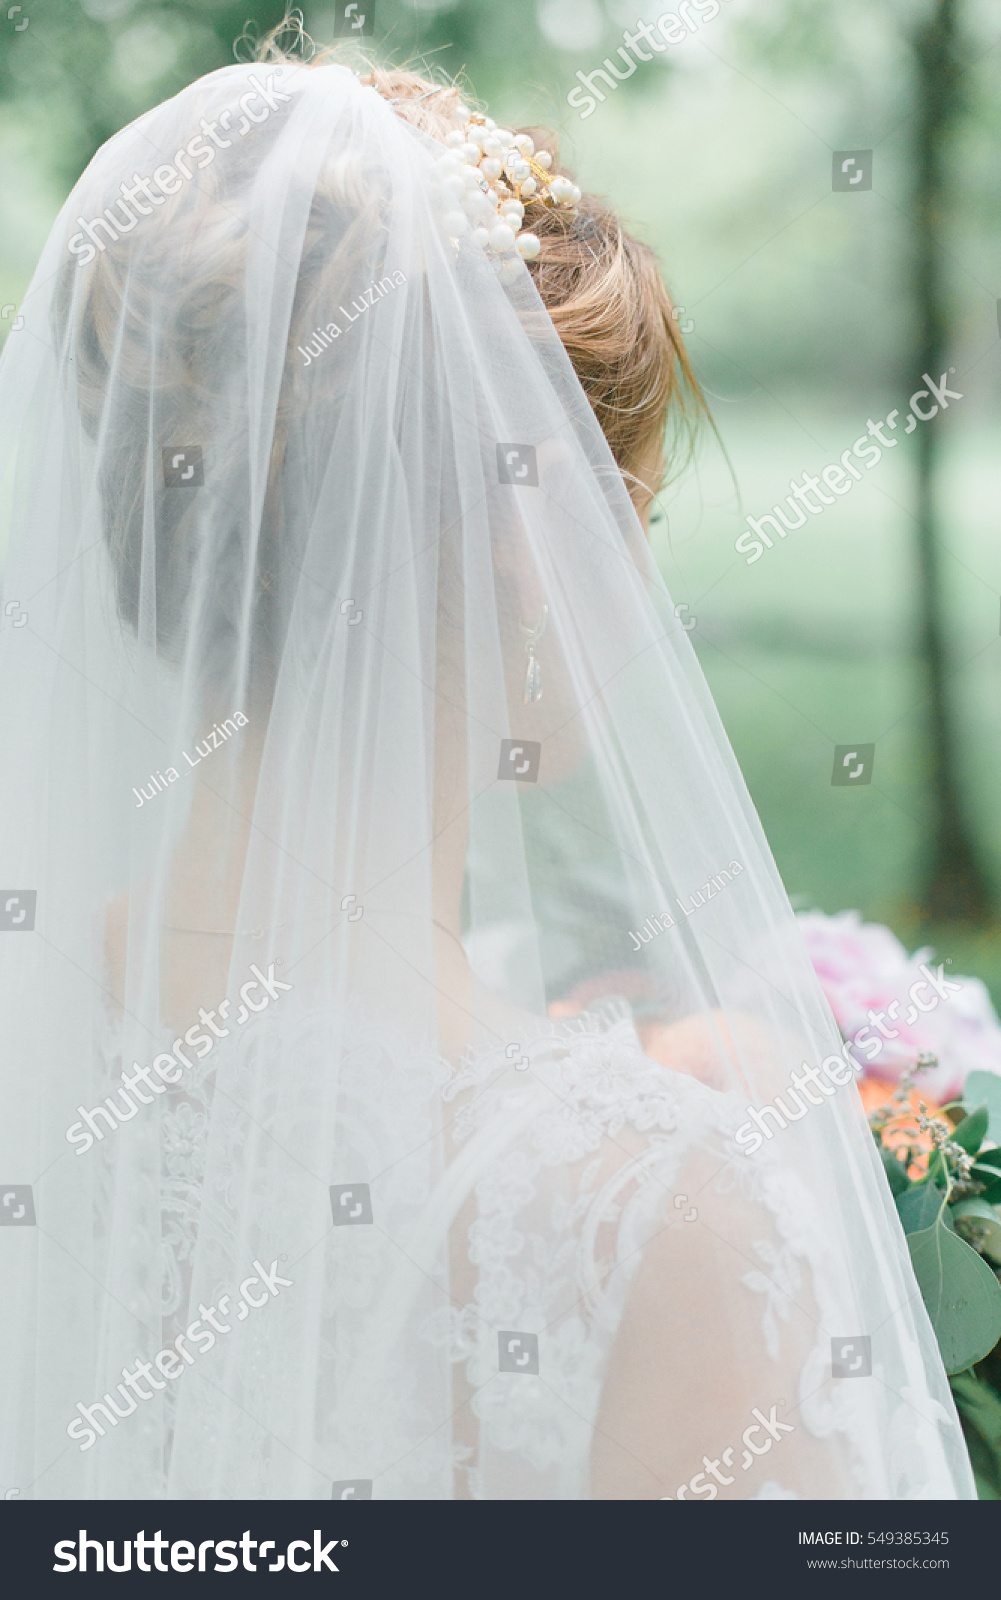 Tender Blond Bride White Dress Veil Stock Photo (Royalty Free ...